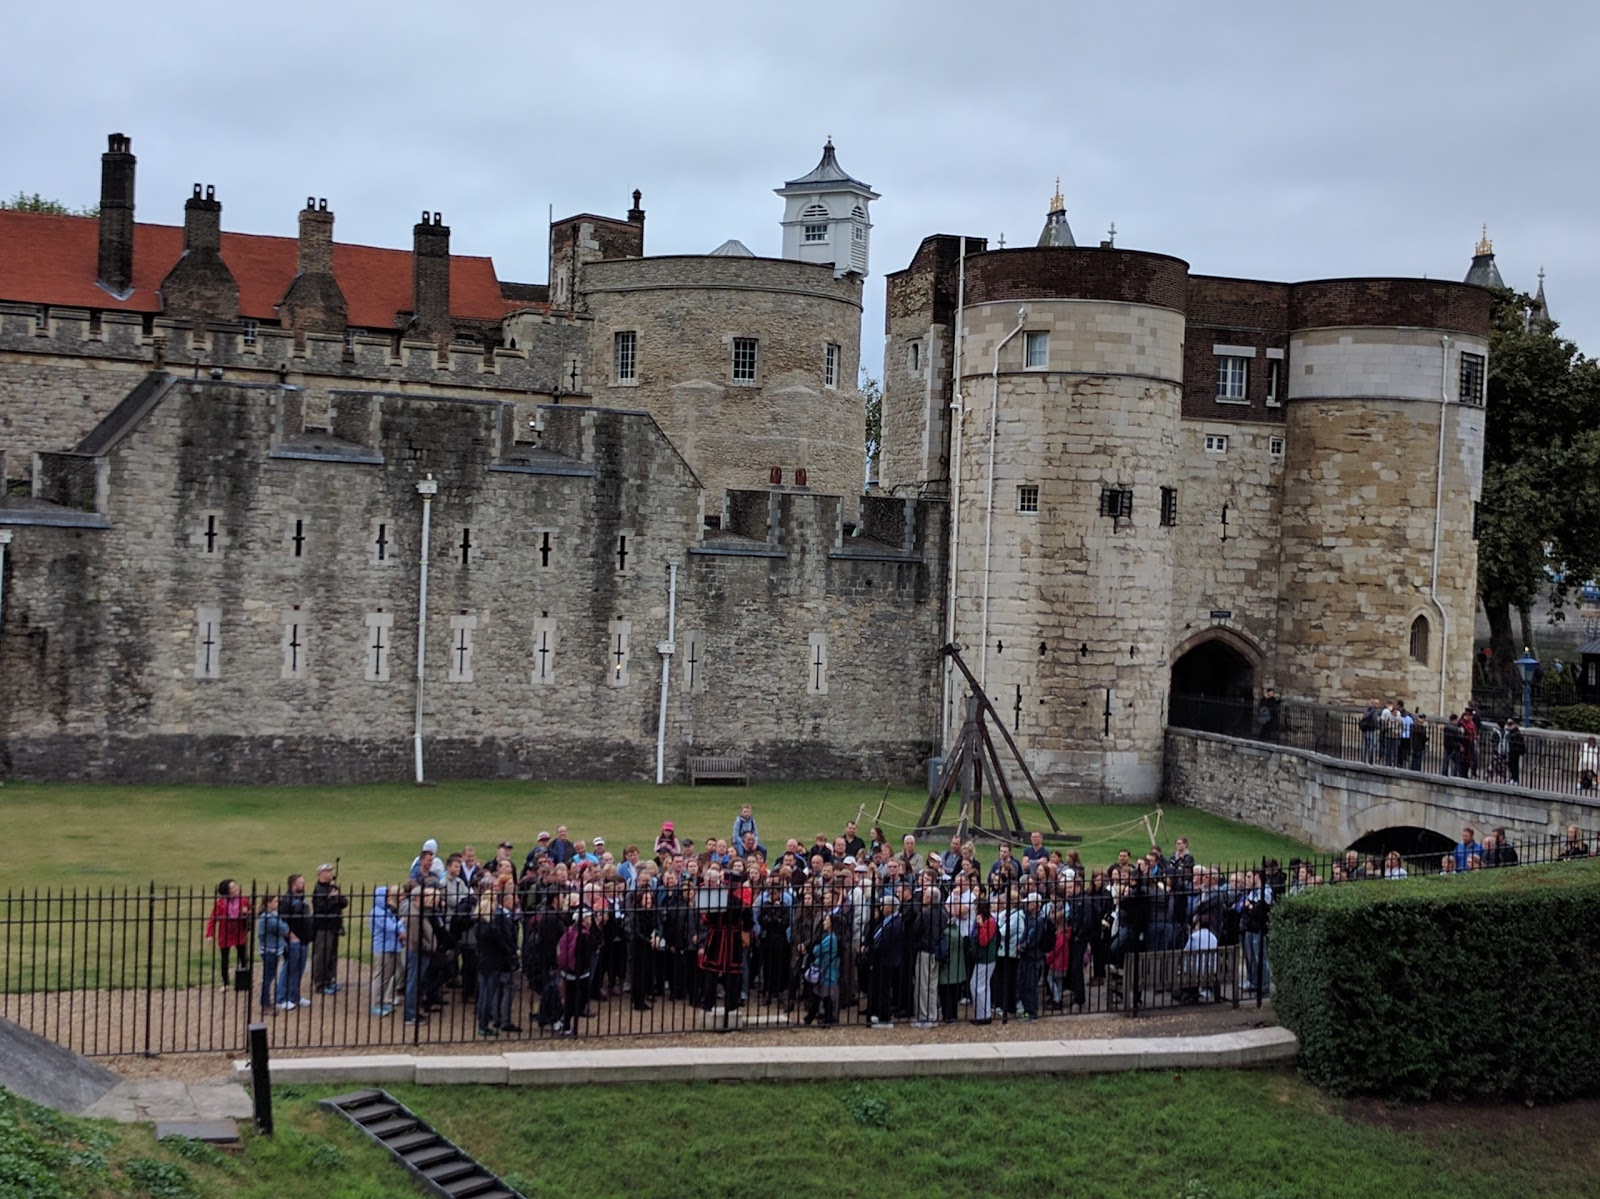 A Tale Of Two Castles Part 2 The Tower Of London